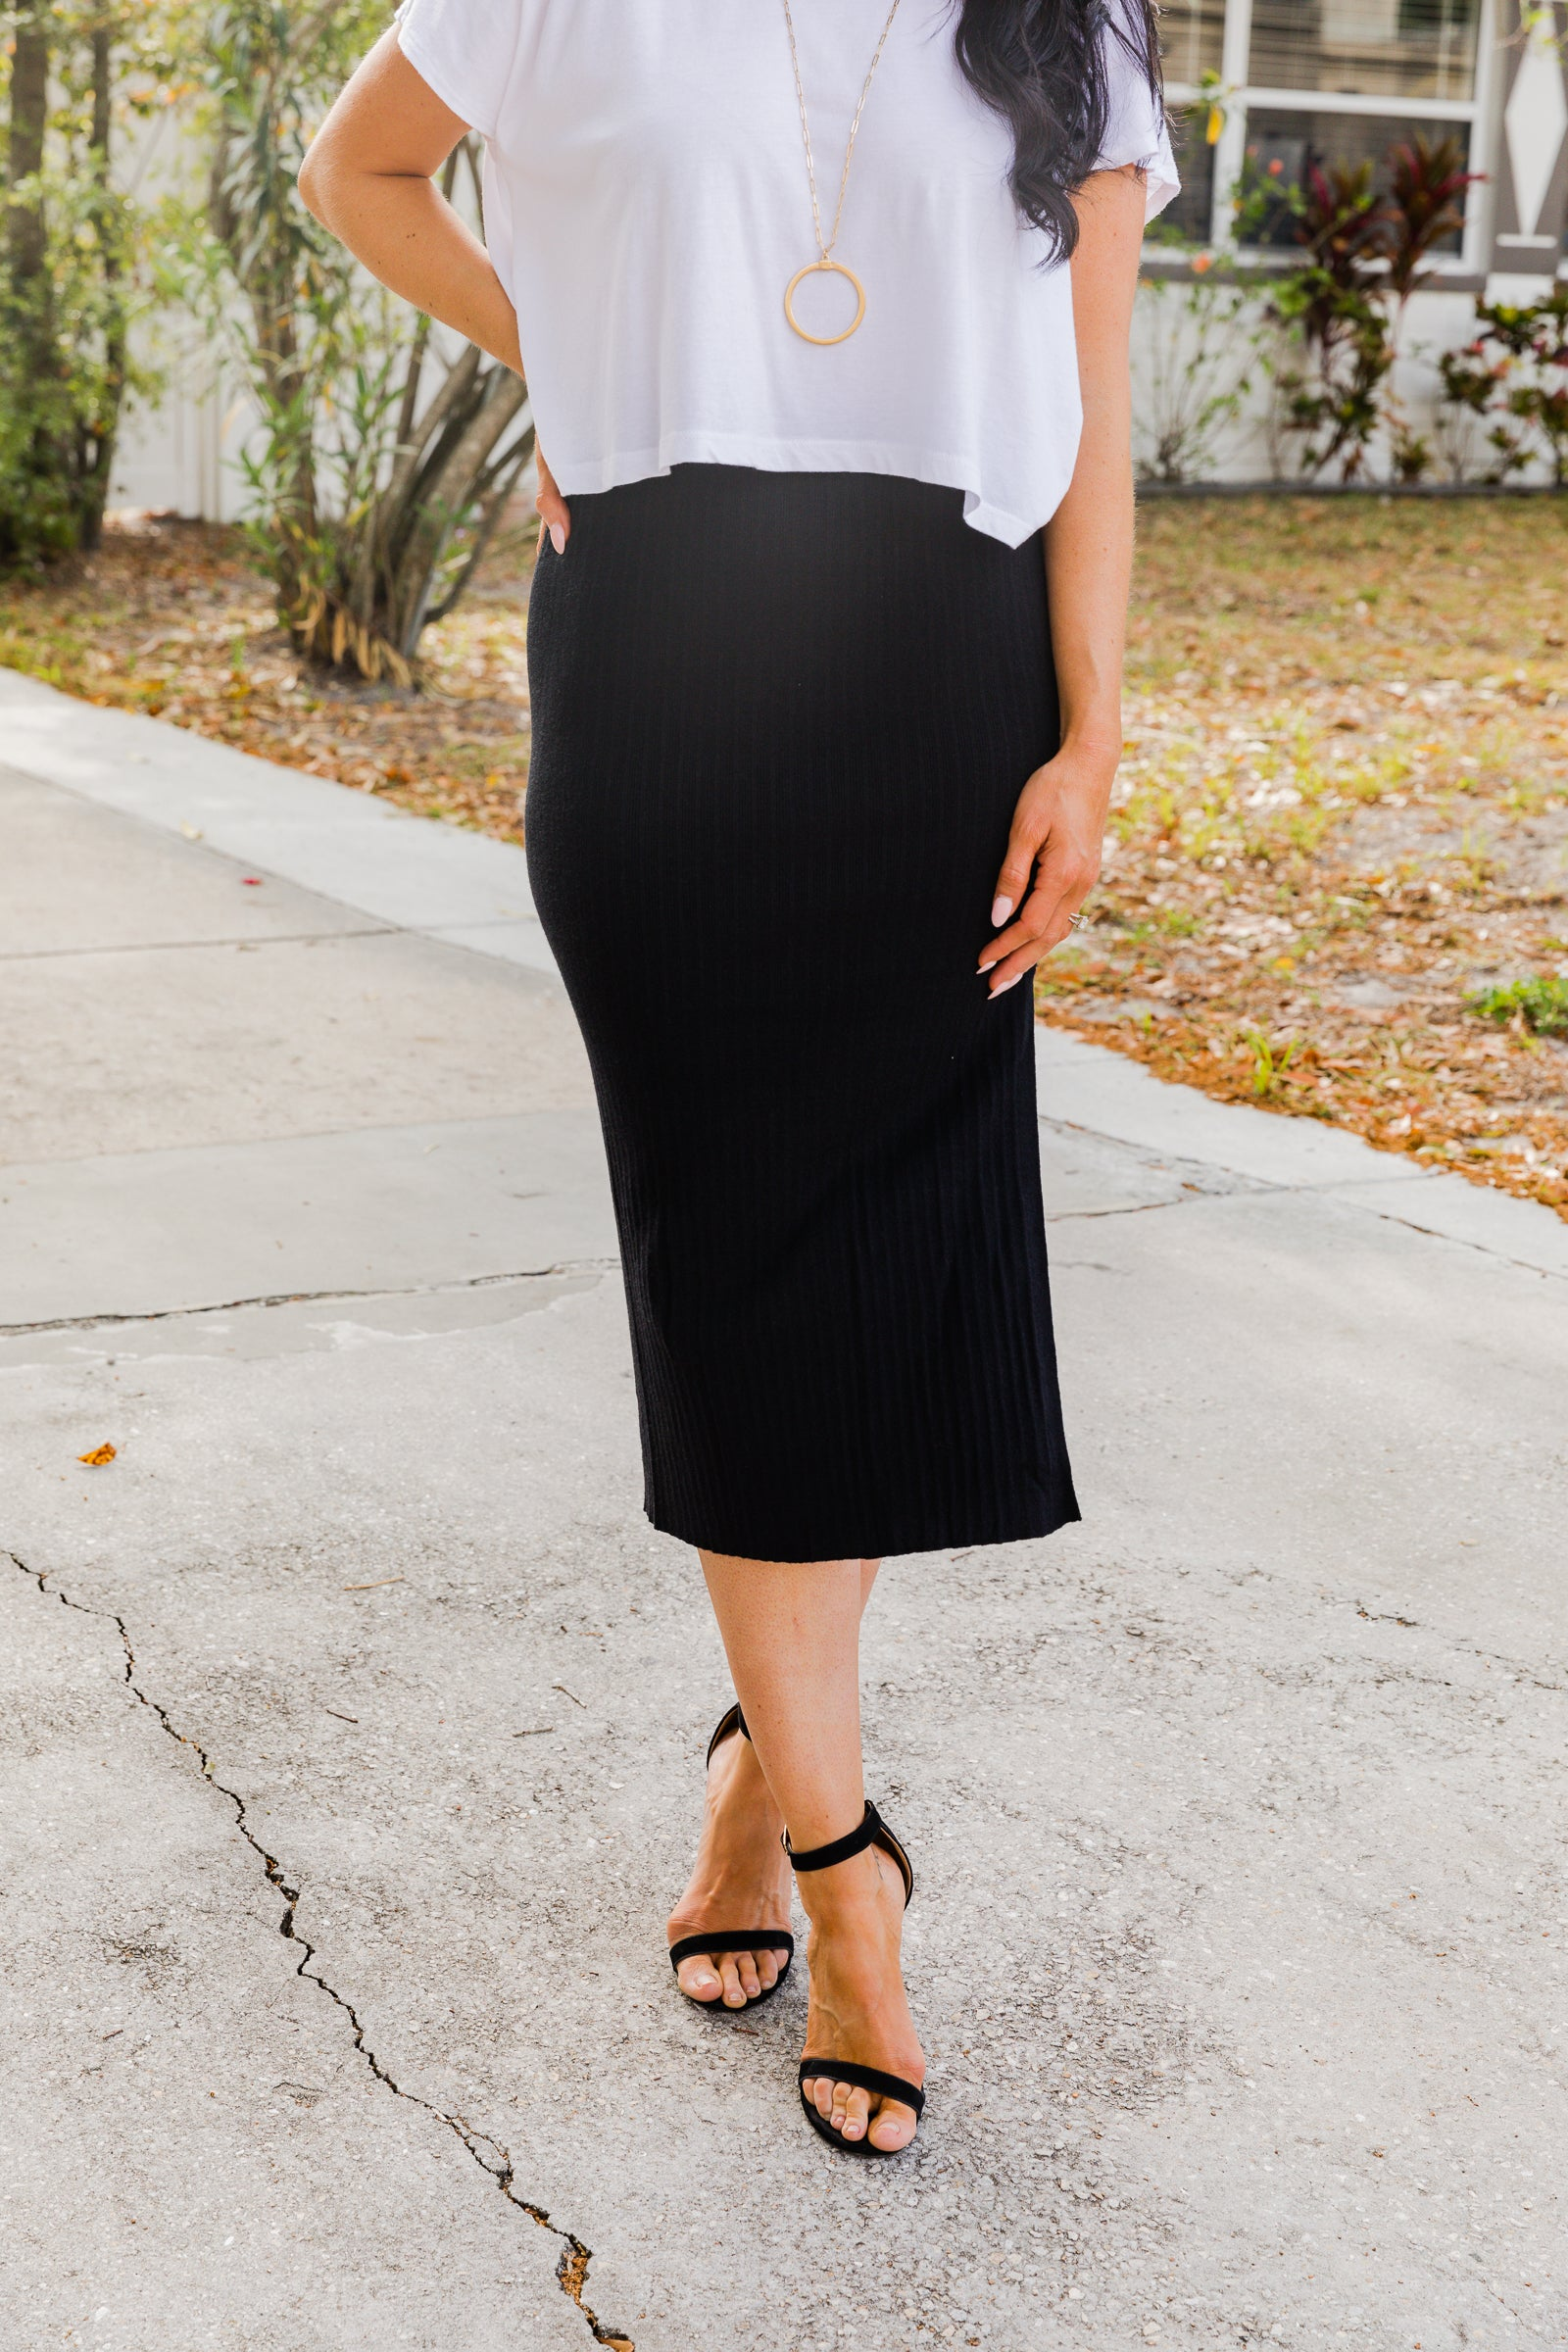 Elastic waistband on a fitted and hip-hugging pencil skirt silhouette with a slit down the side. Style this bodycon midi skirt with a bodysuit, block heels, and statement clutch.